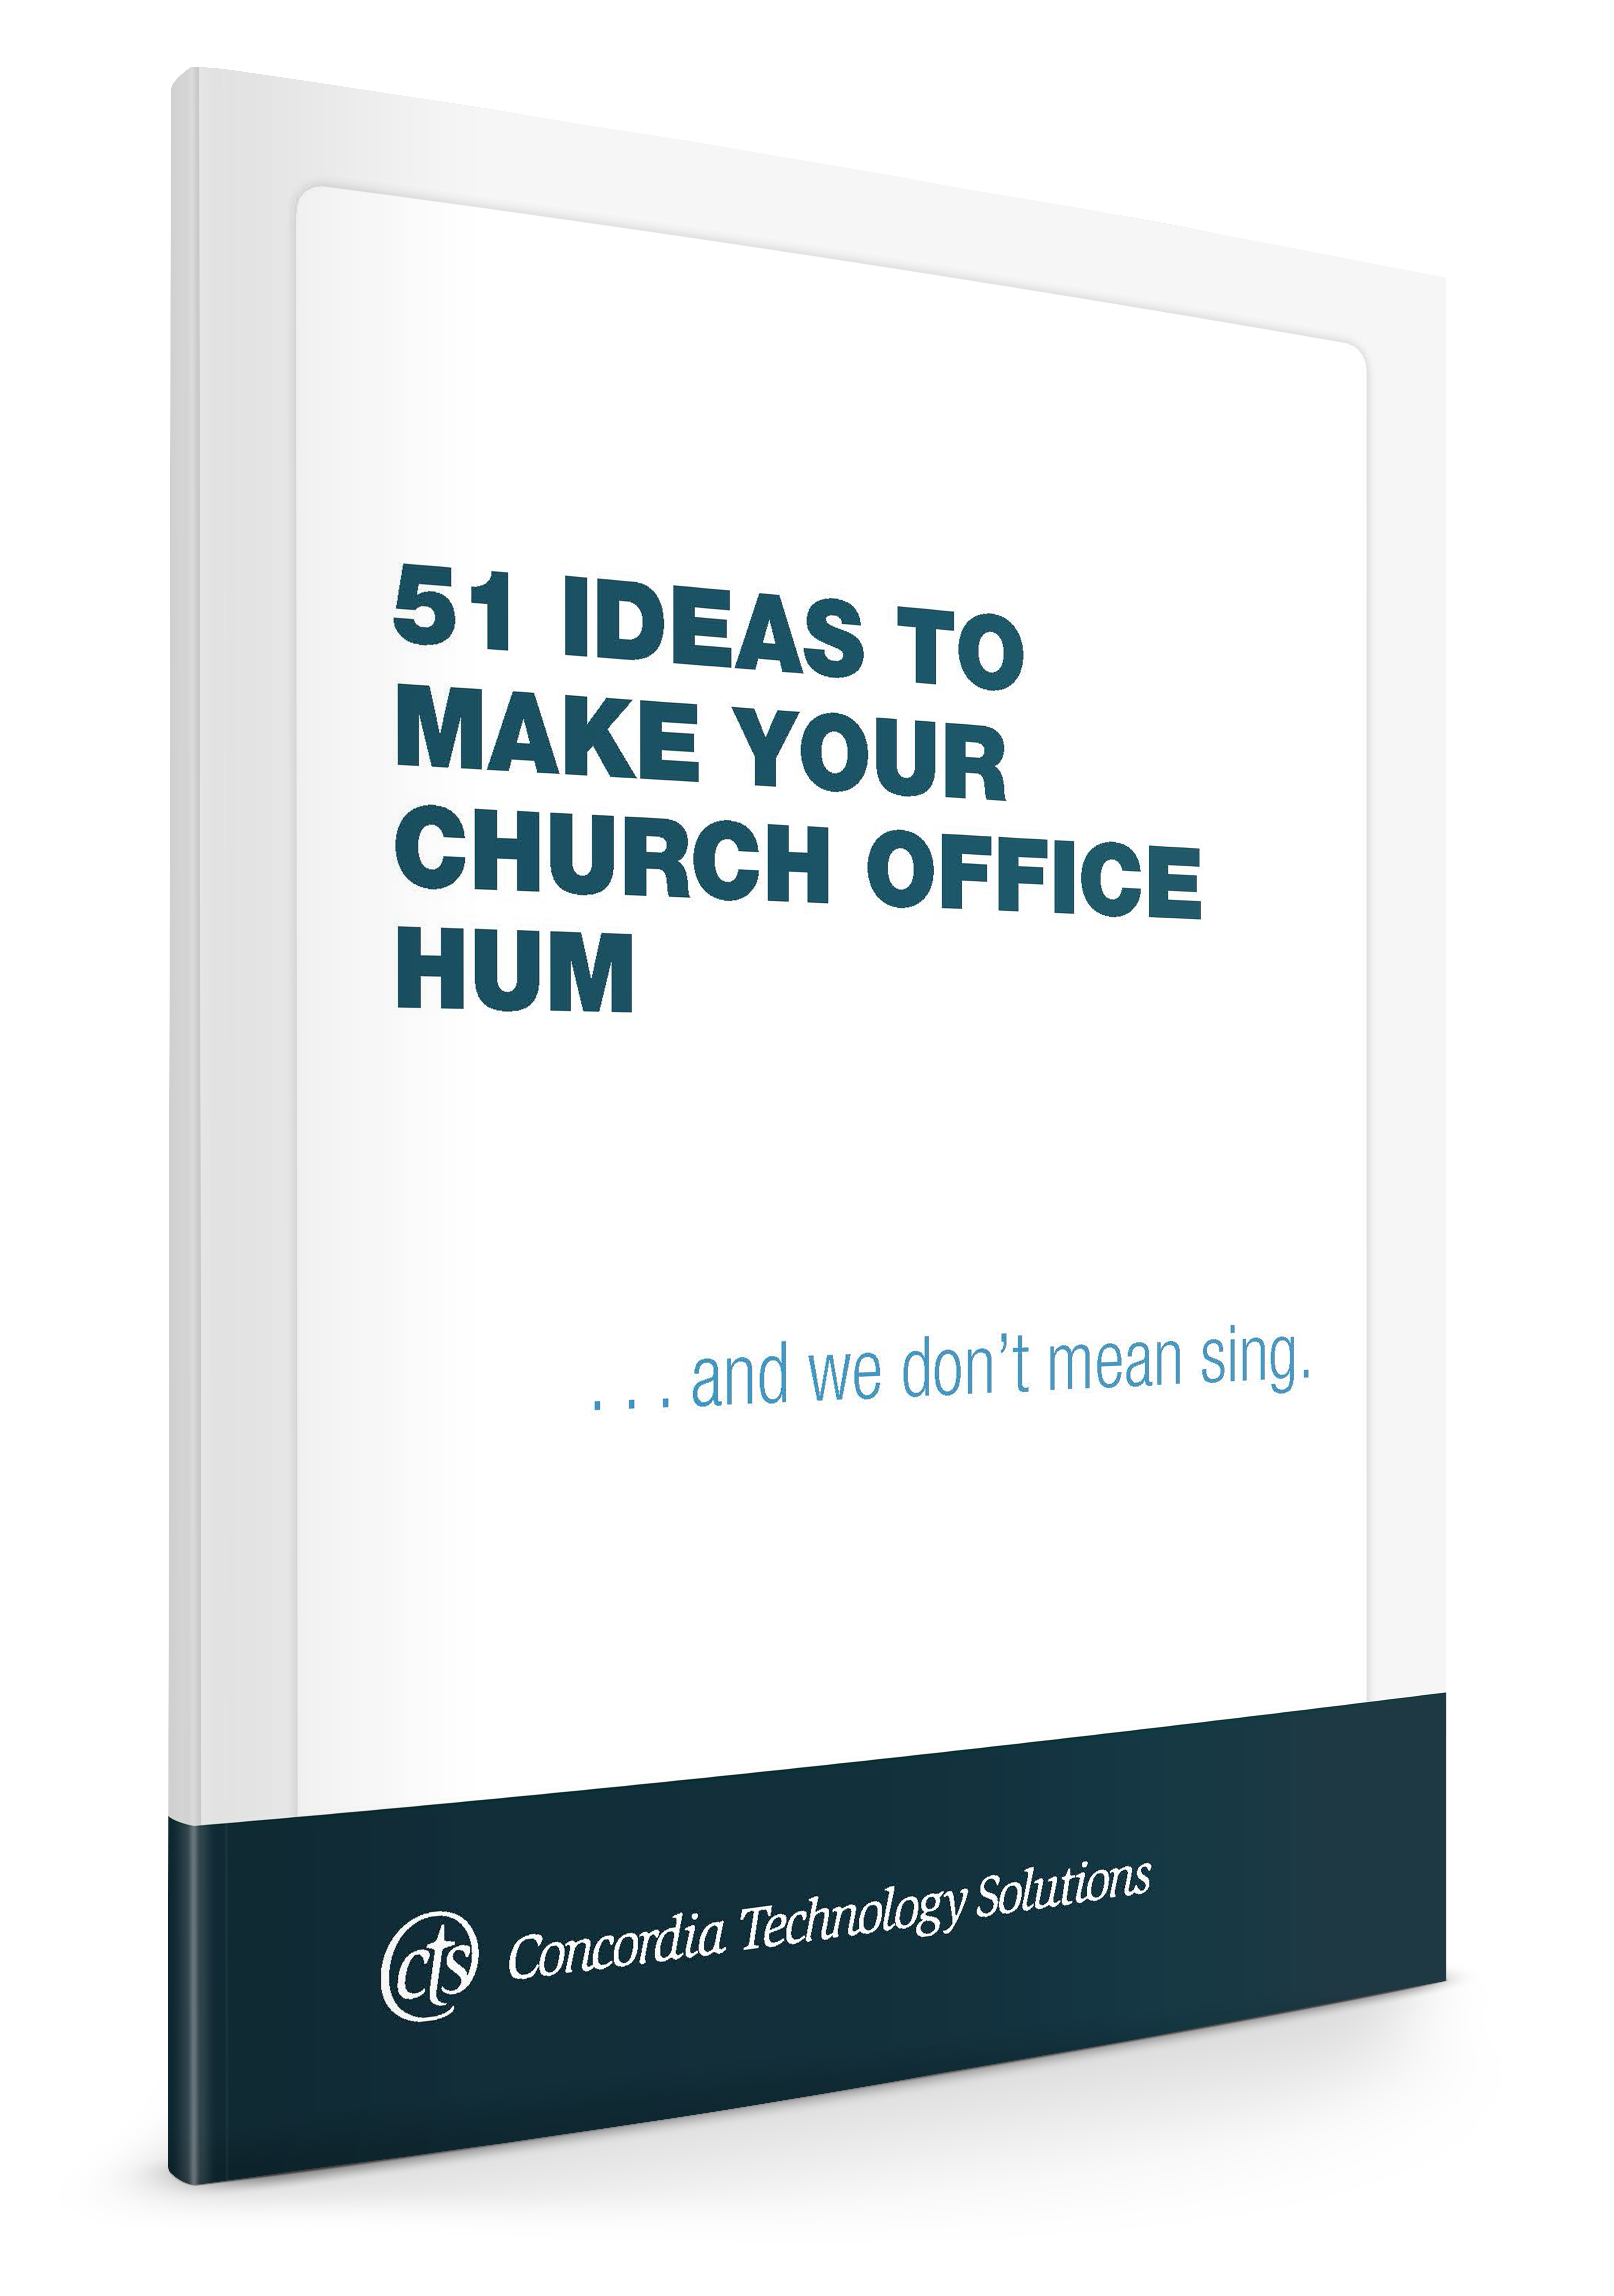 3D_Mockup_-_51_Ideas_to_Make_Your_Church_Office_Hum.png